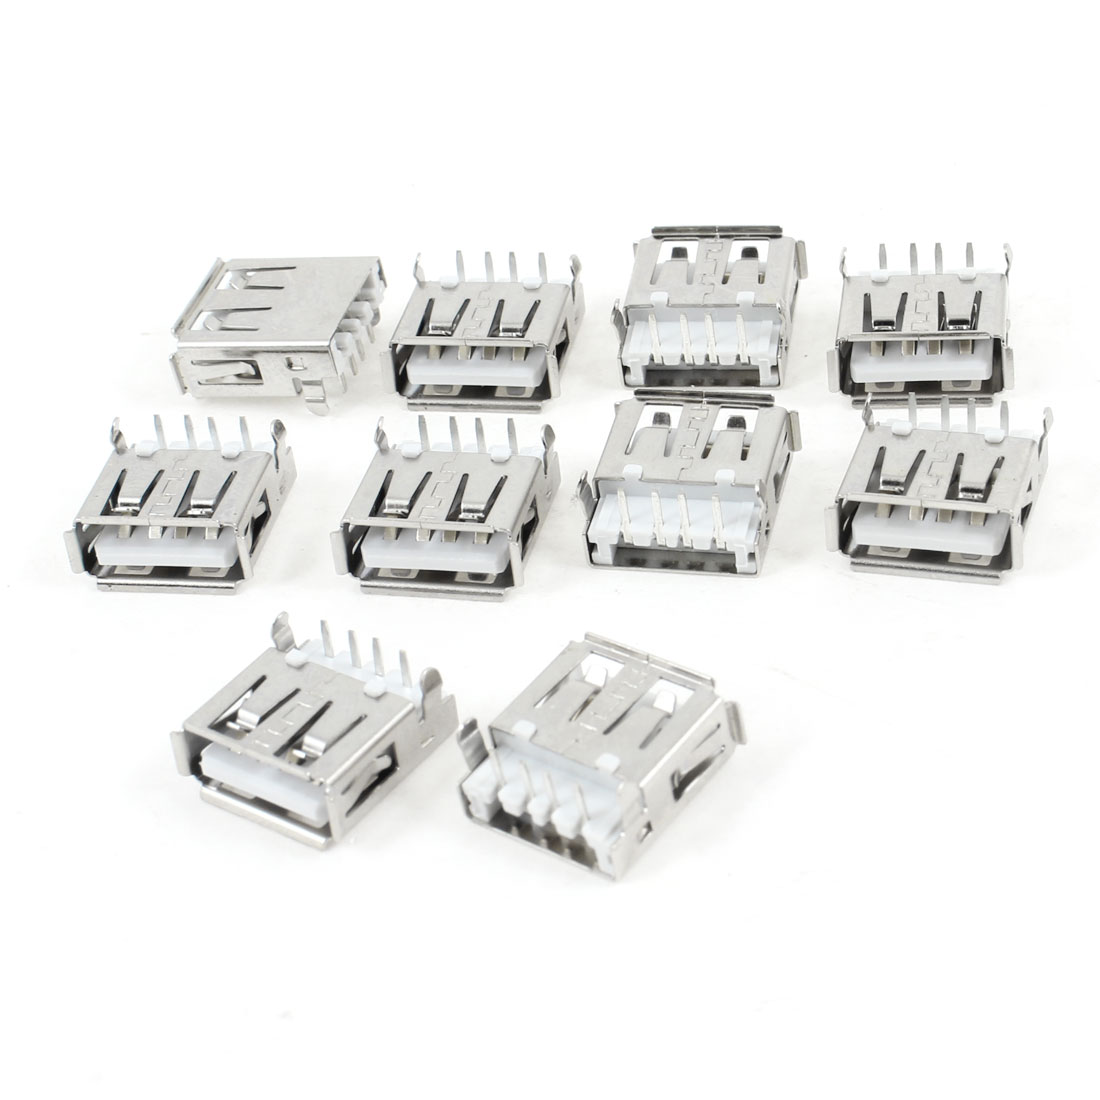 10 Pcs USB 2.0 Type A Right Angle 4-Pin DIP Female Jack Socket